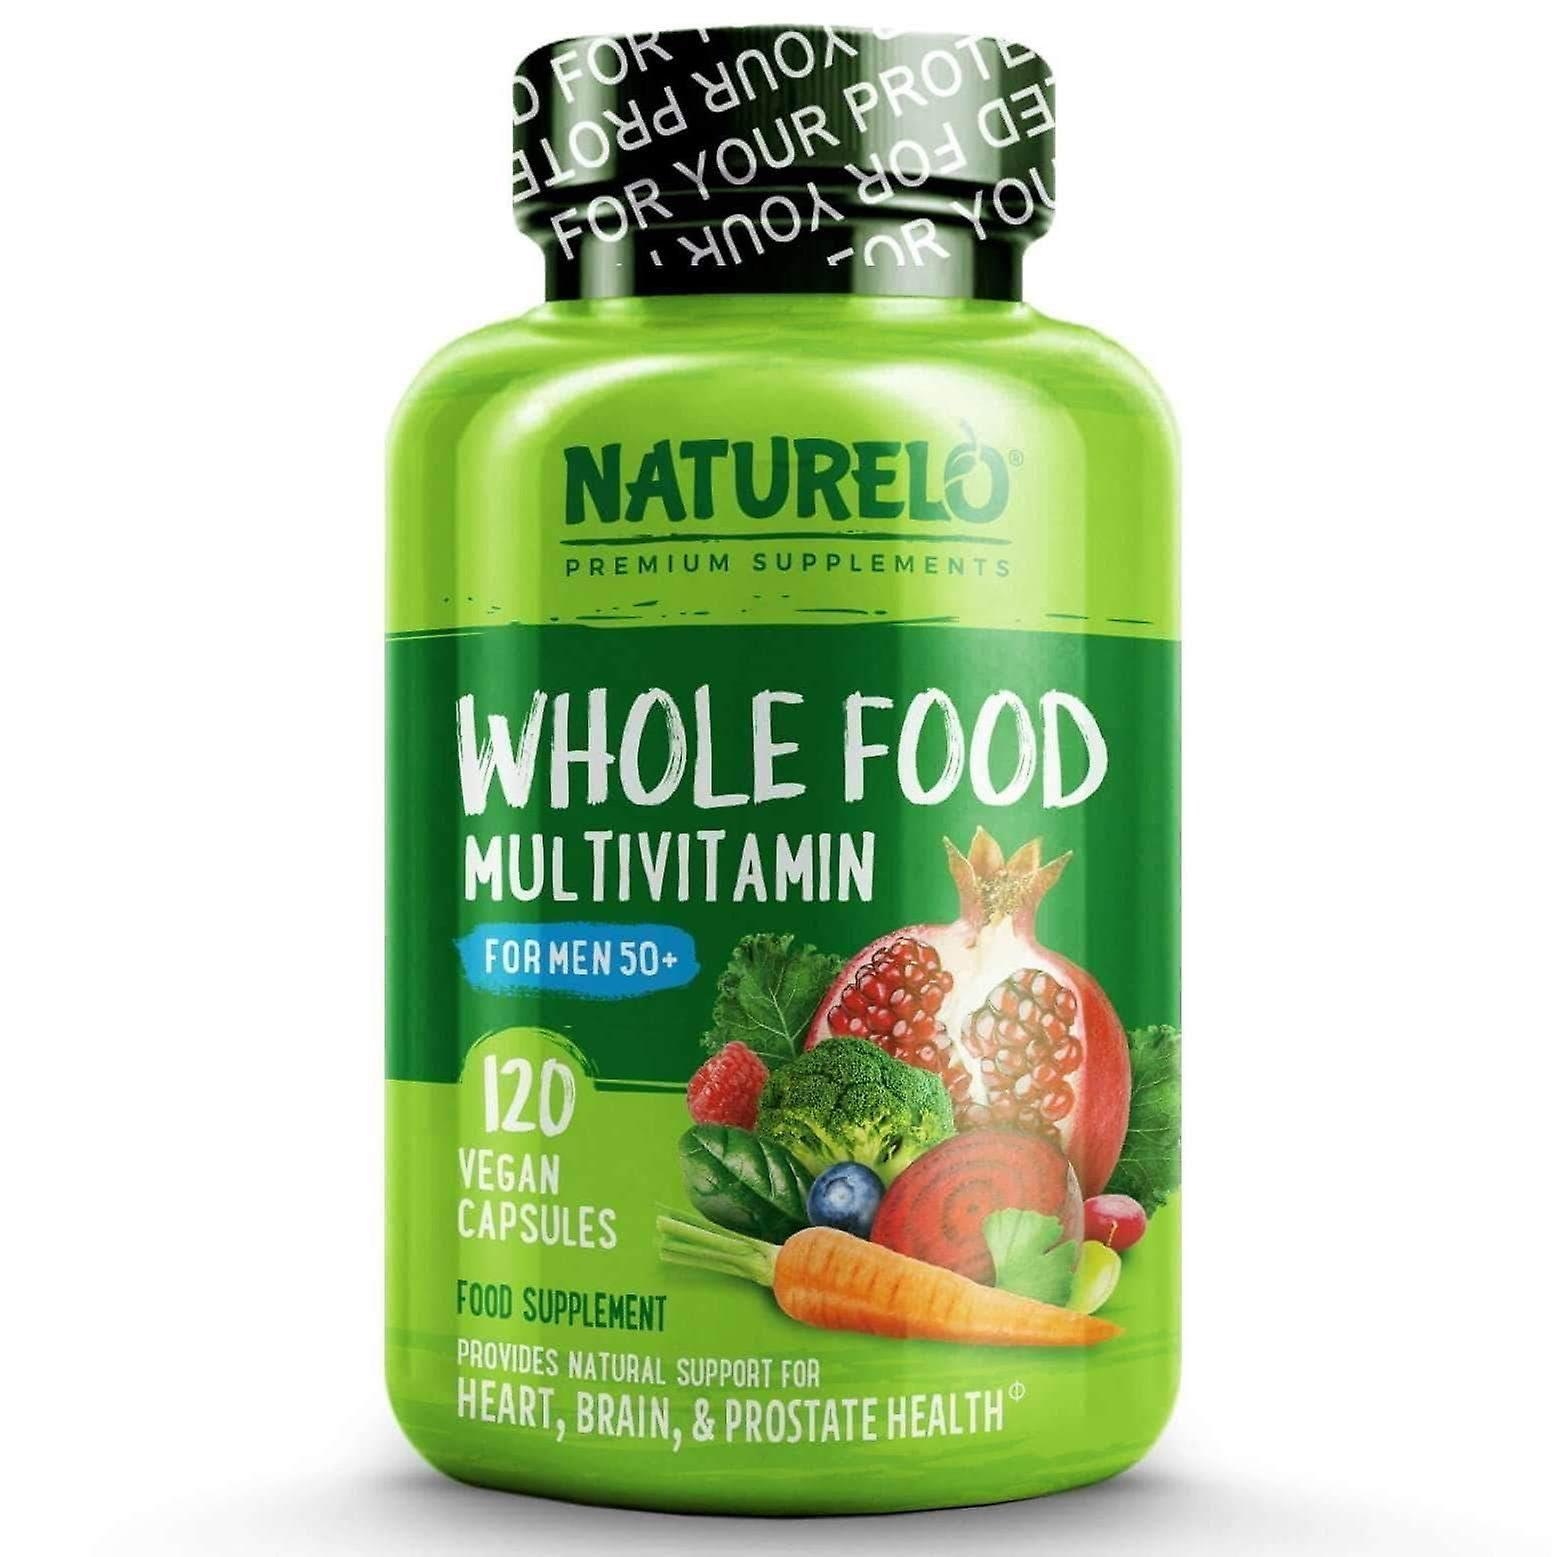 Whole food multivitamin for men 50+ with natural vitamins & prostate support